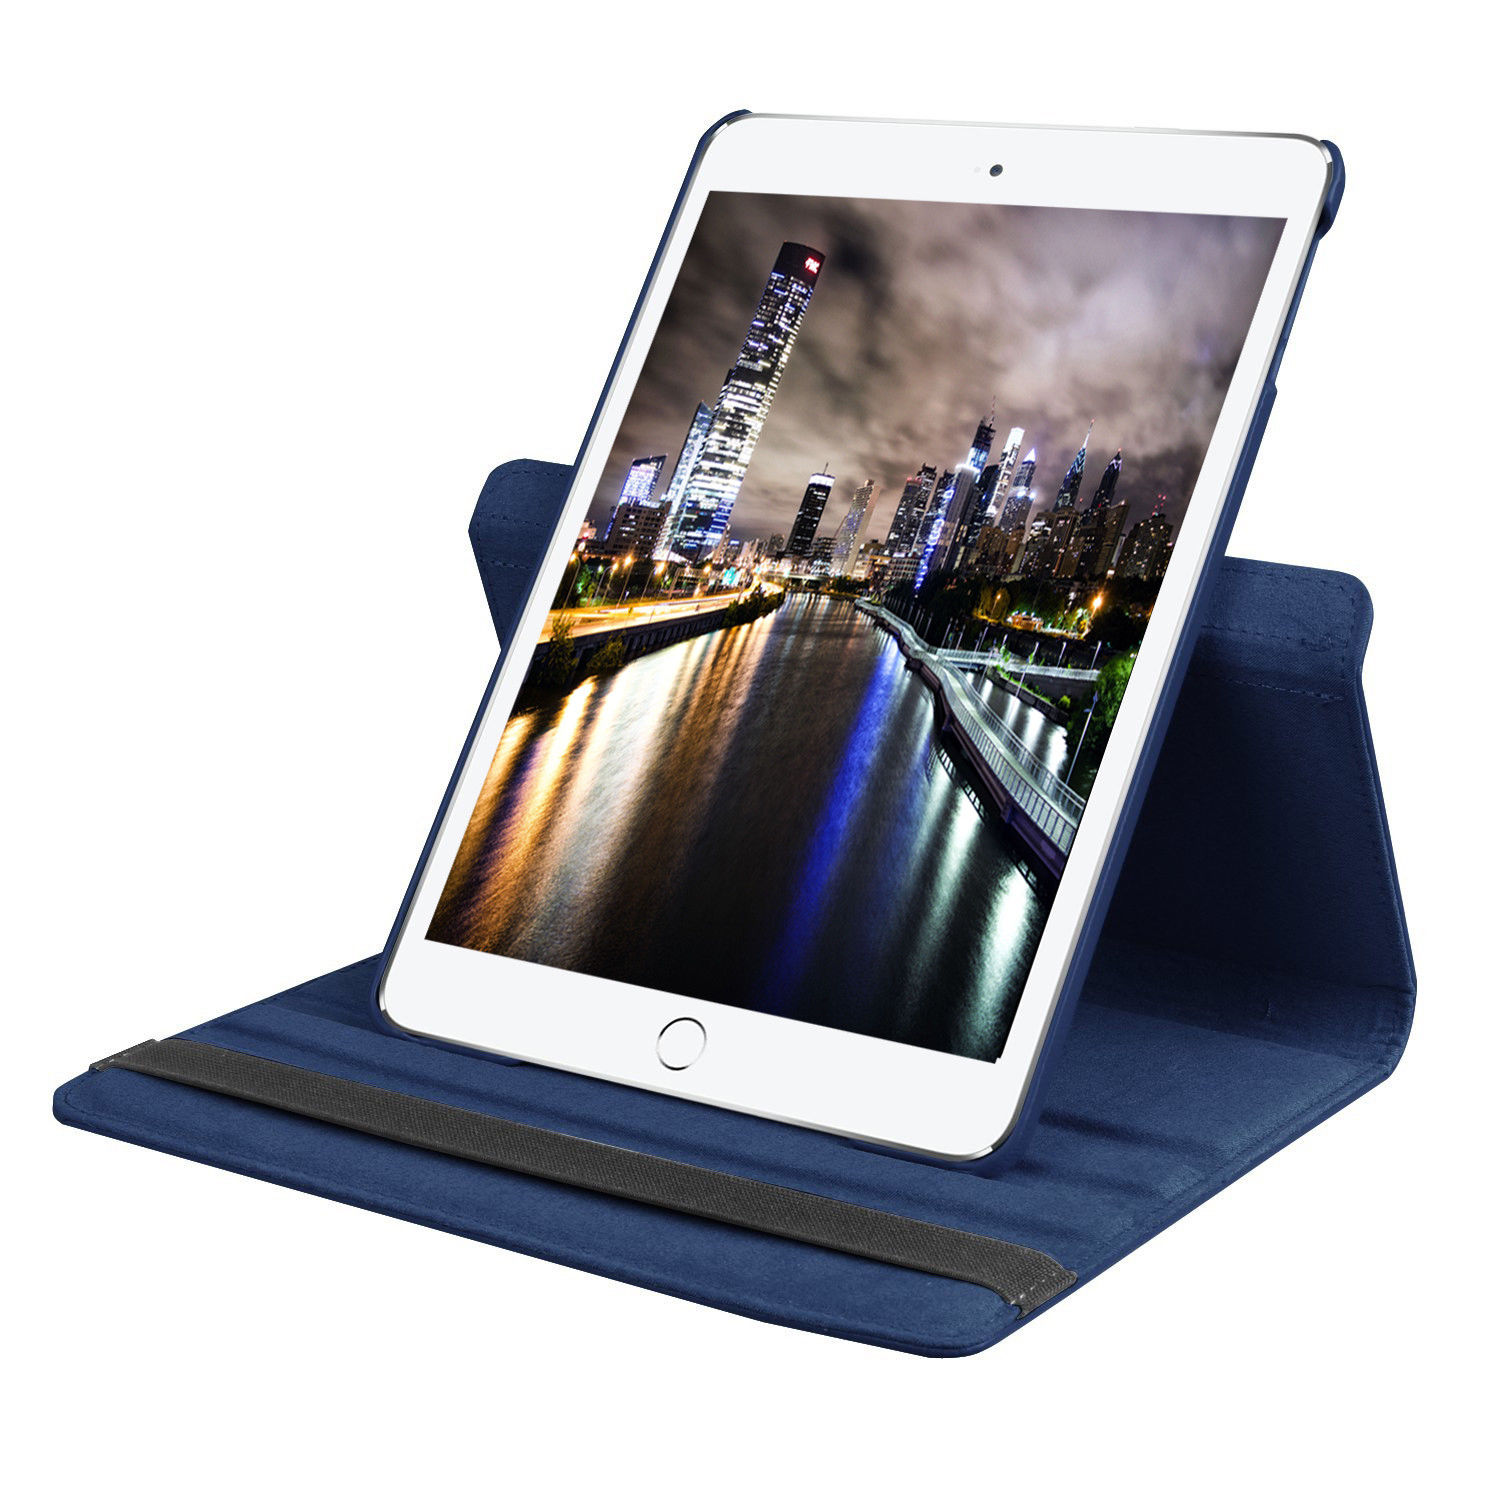 Custodia-per-Apple-iPad-Pro-2017-iPad-Air-3-10-5-Smart-Cover-Case-Custodia-Protettiva miniatura 20